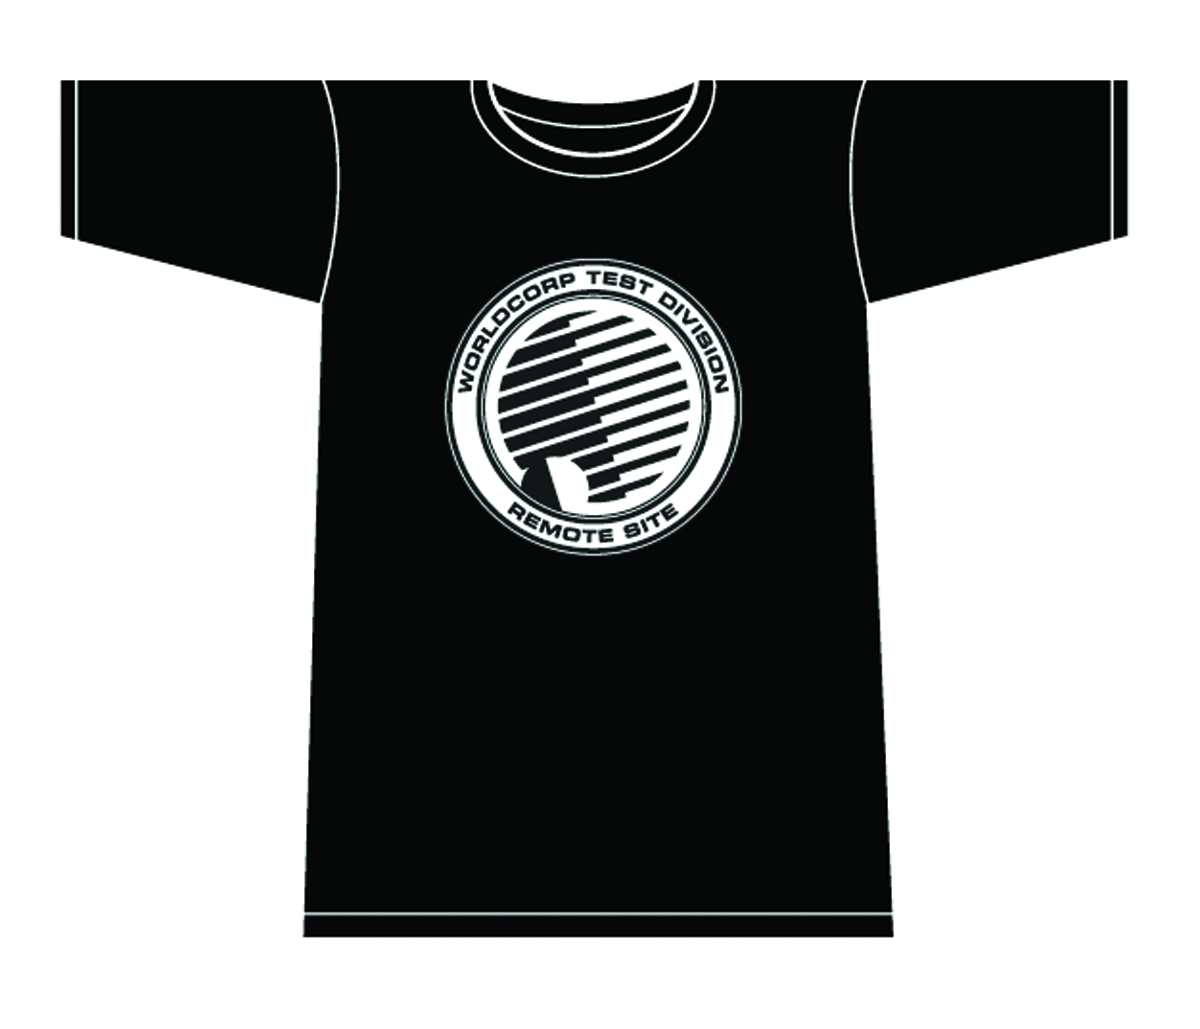 NOWHERE MEN WORLD CORP TEST DIVISION T/S BLK MENS LG